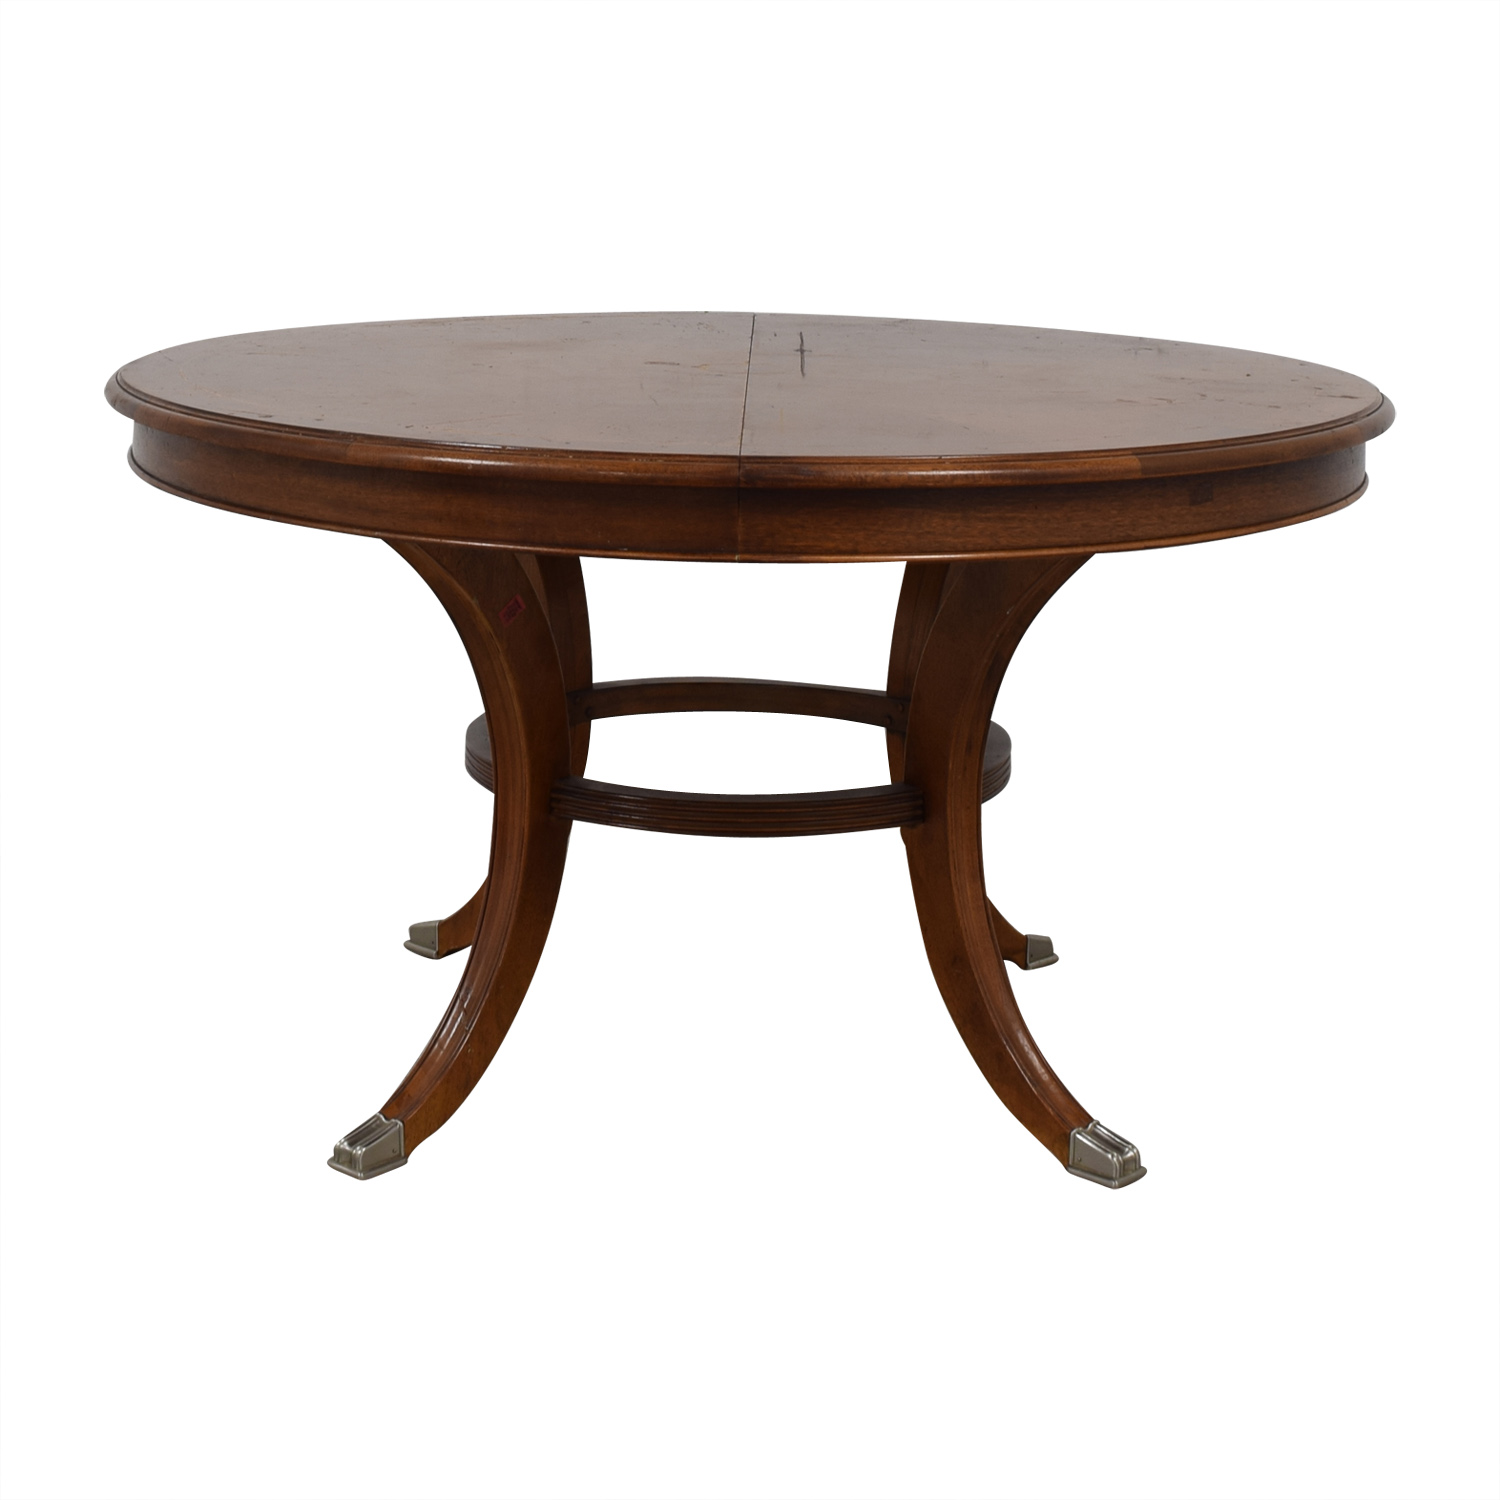 buy Pottery Barn Pottery Barn Extendable Dinner Table online